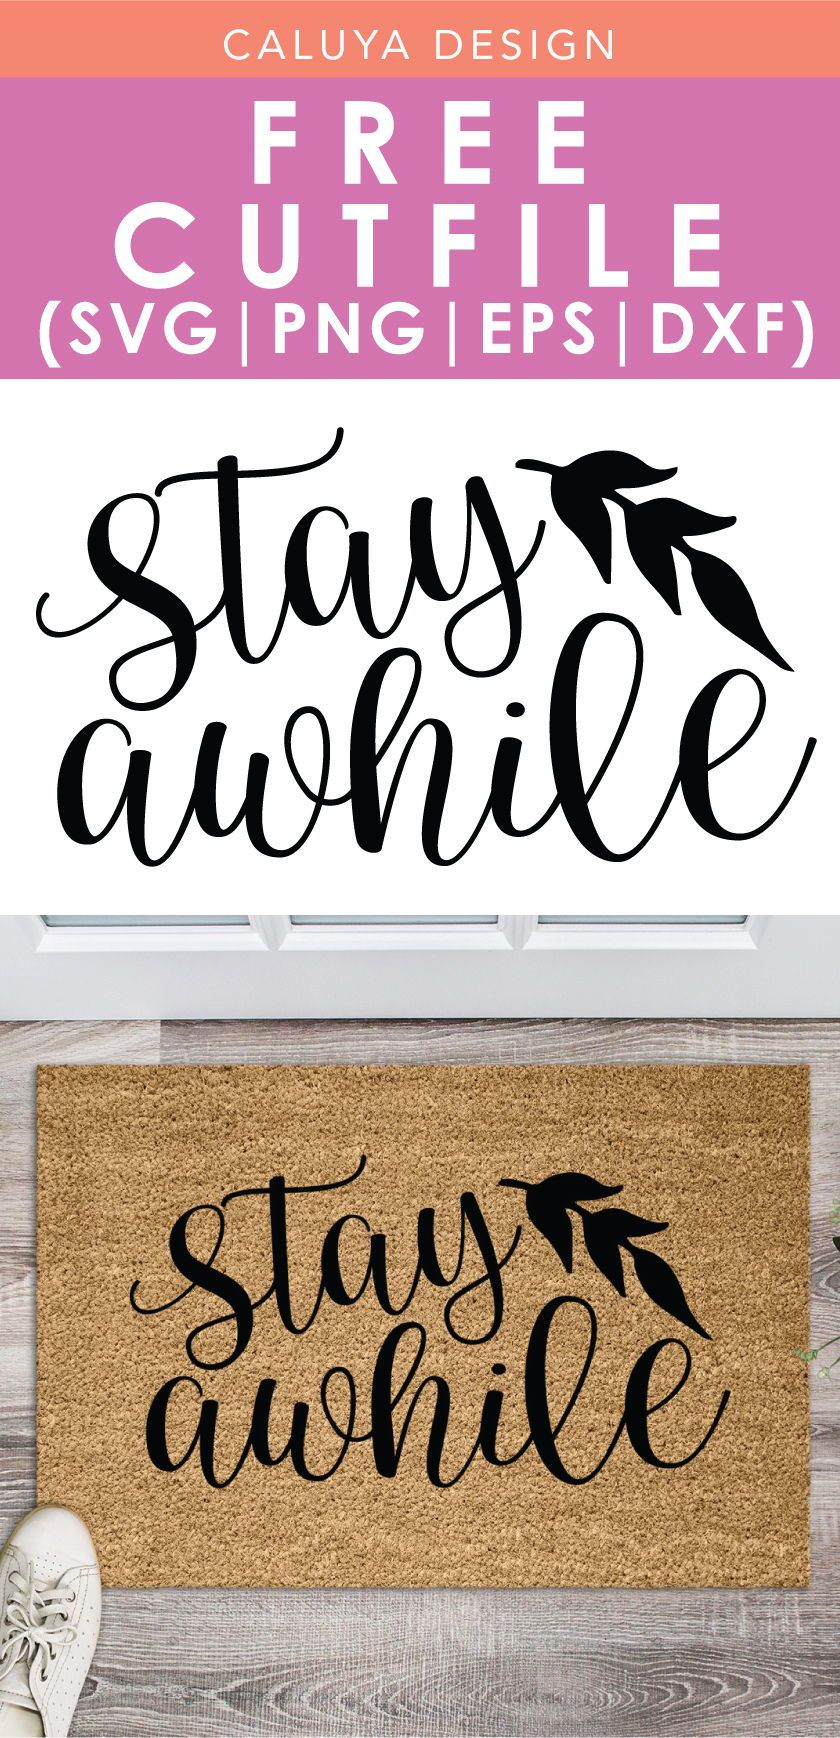 Free Stay Awhile Svg Png Eps Dxf By Caluya Design Cricut Svg Free Printable Clip Art